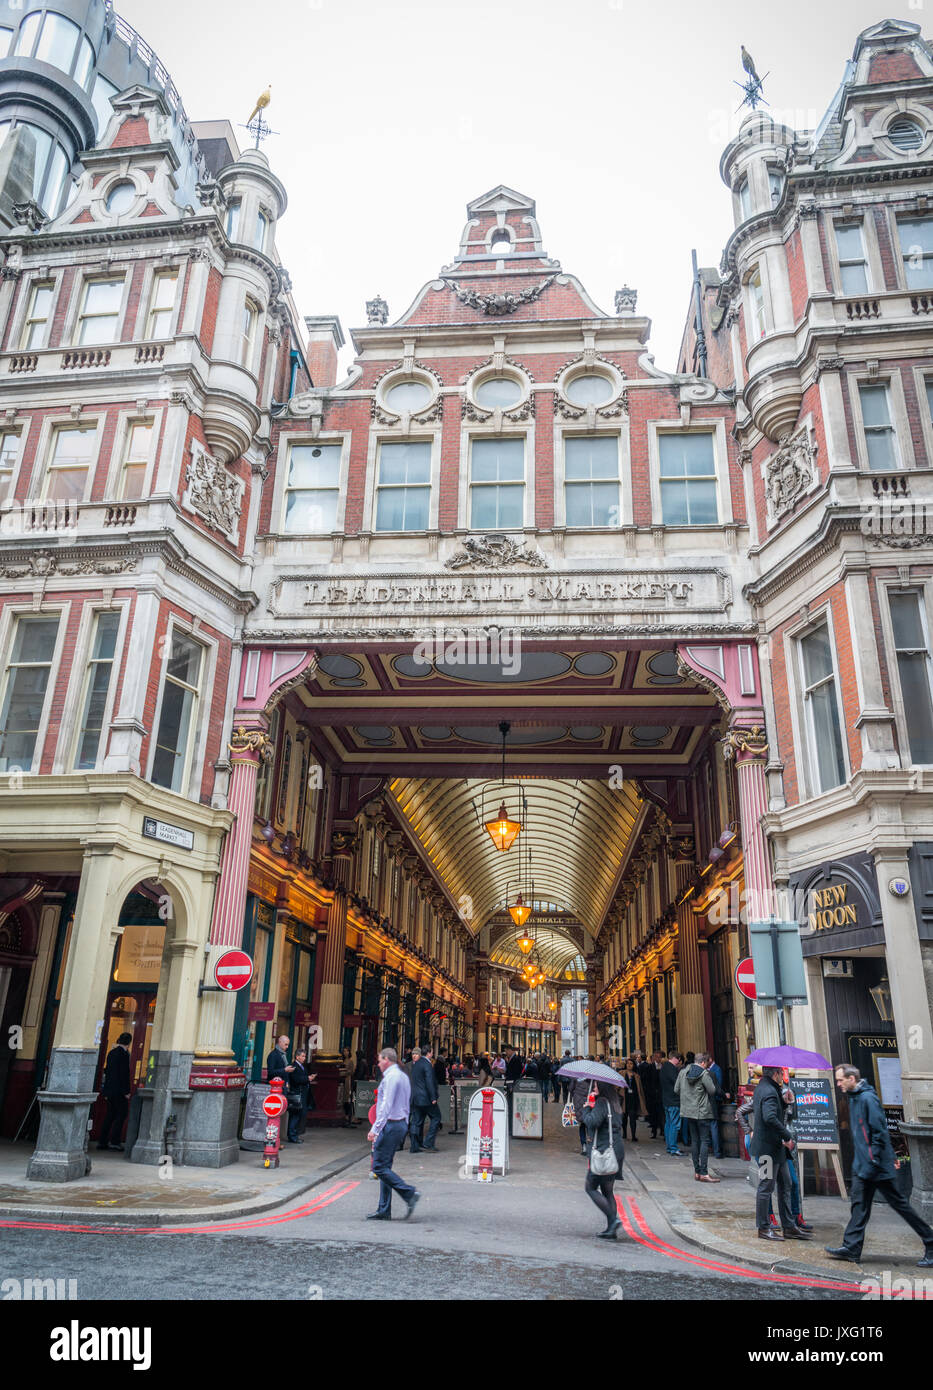 Leadenhall Market is a covered market in London, located on Gracechurch Street - Stock Image